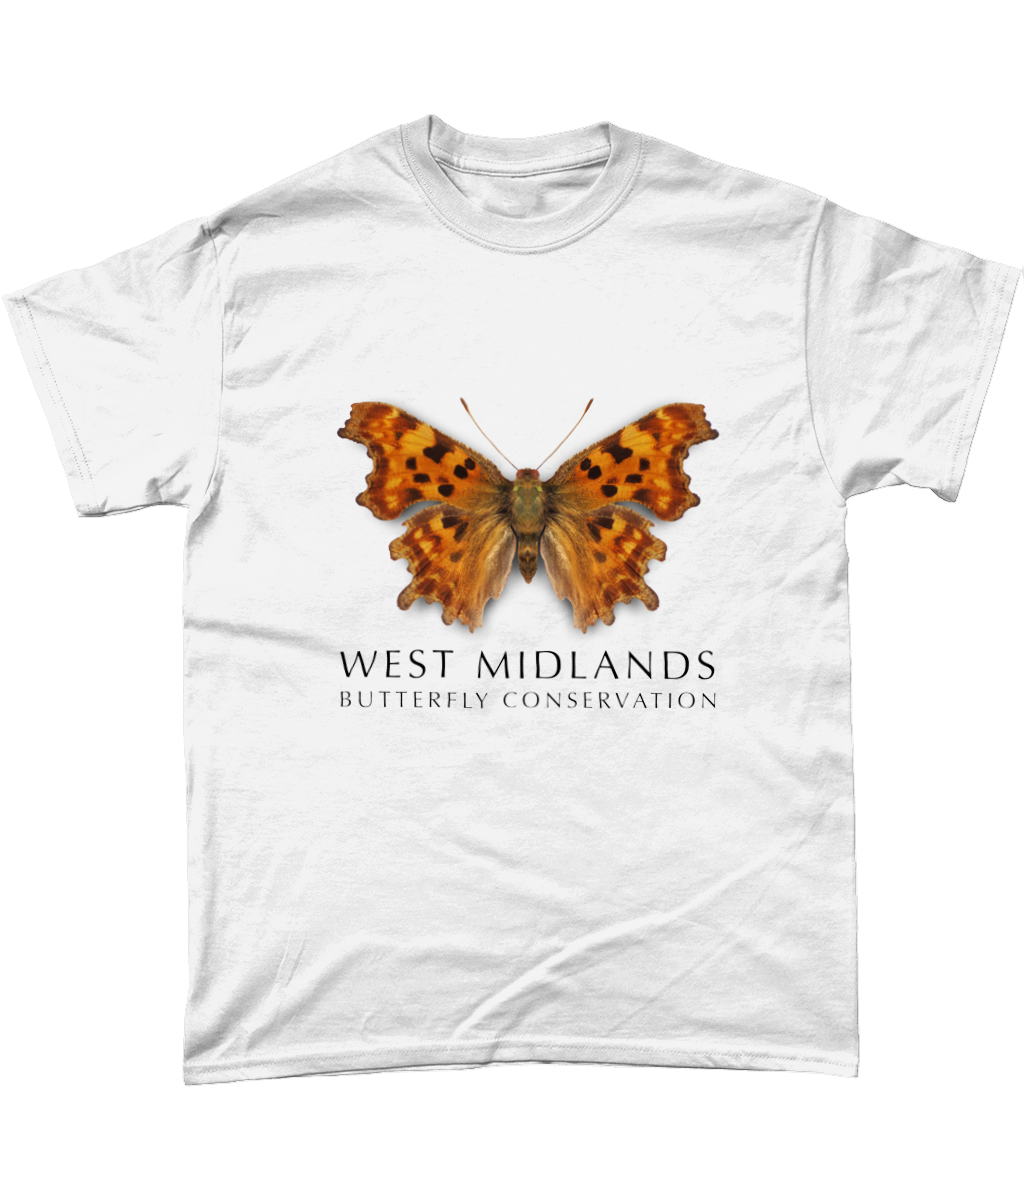 West Midlands Comma Butterfly, Adult (Unisex) T-Shirt